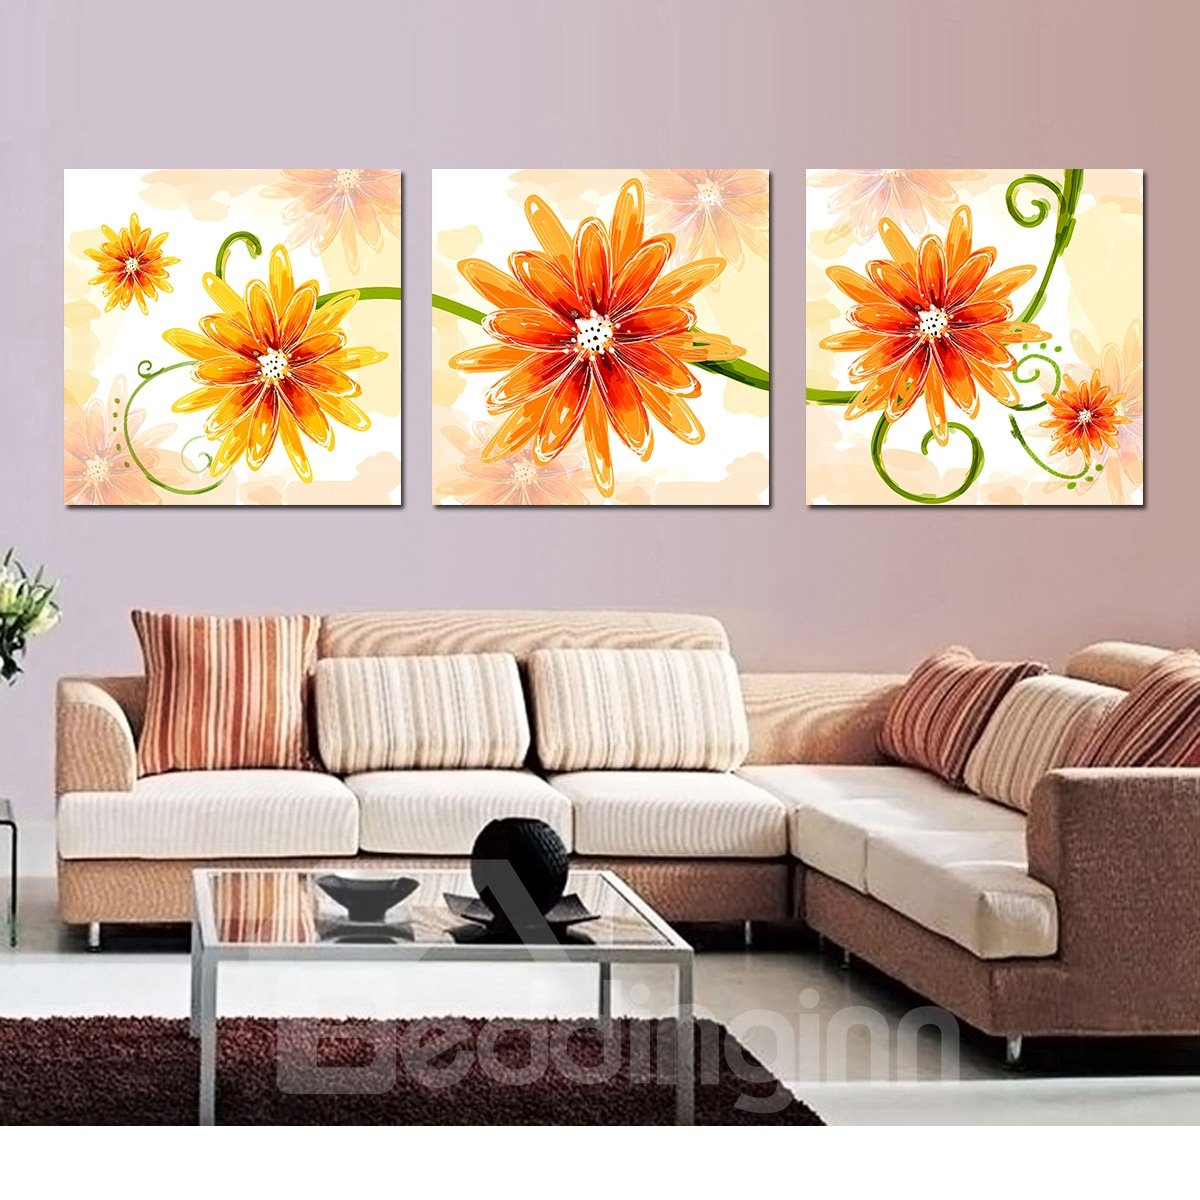 Fancy Orange Flowers Film Art Wall Print